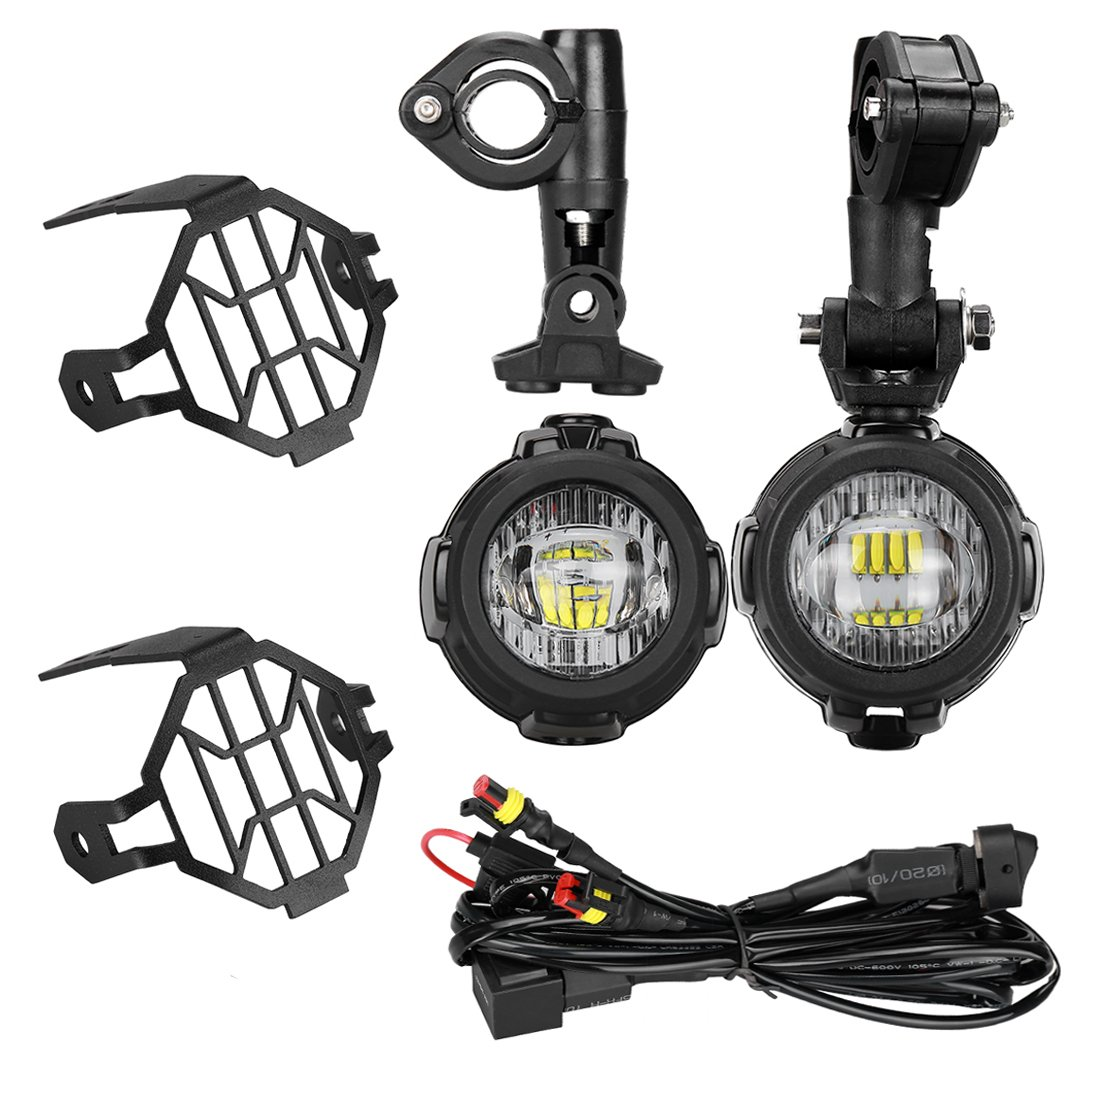 Suparee 40w Led Auxiliary Lamp 6000k Super Bright Fog Thread How Do You Wire The Lights Driving Light Kits With Protect Guards Wiring Harness For Motorcycle Bmw R1200gs F800gs